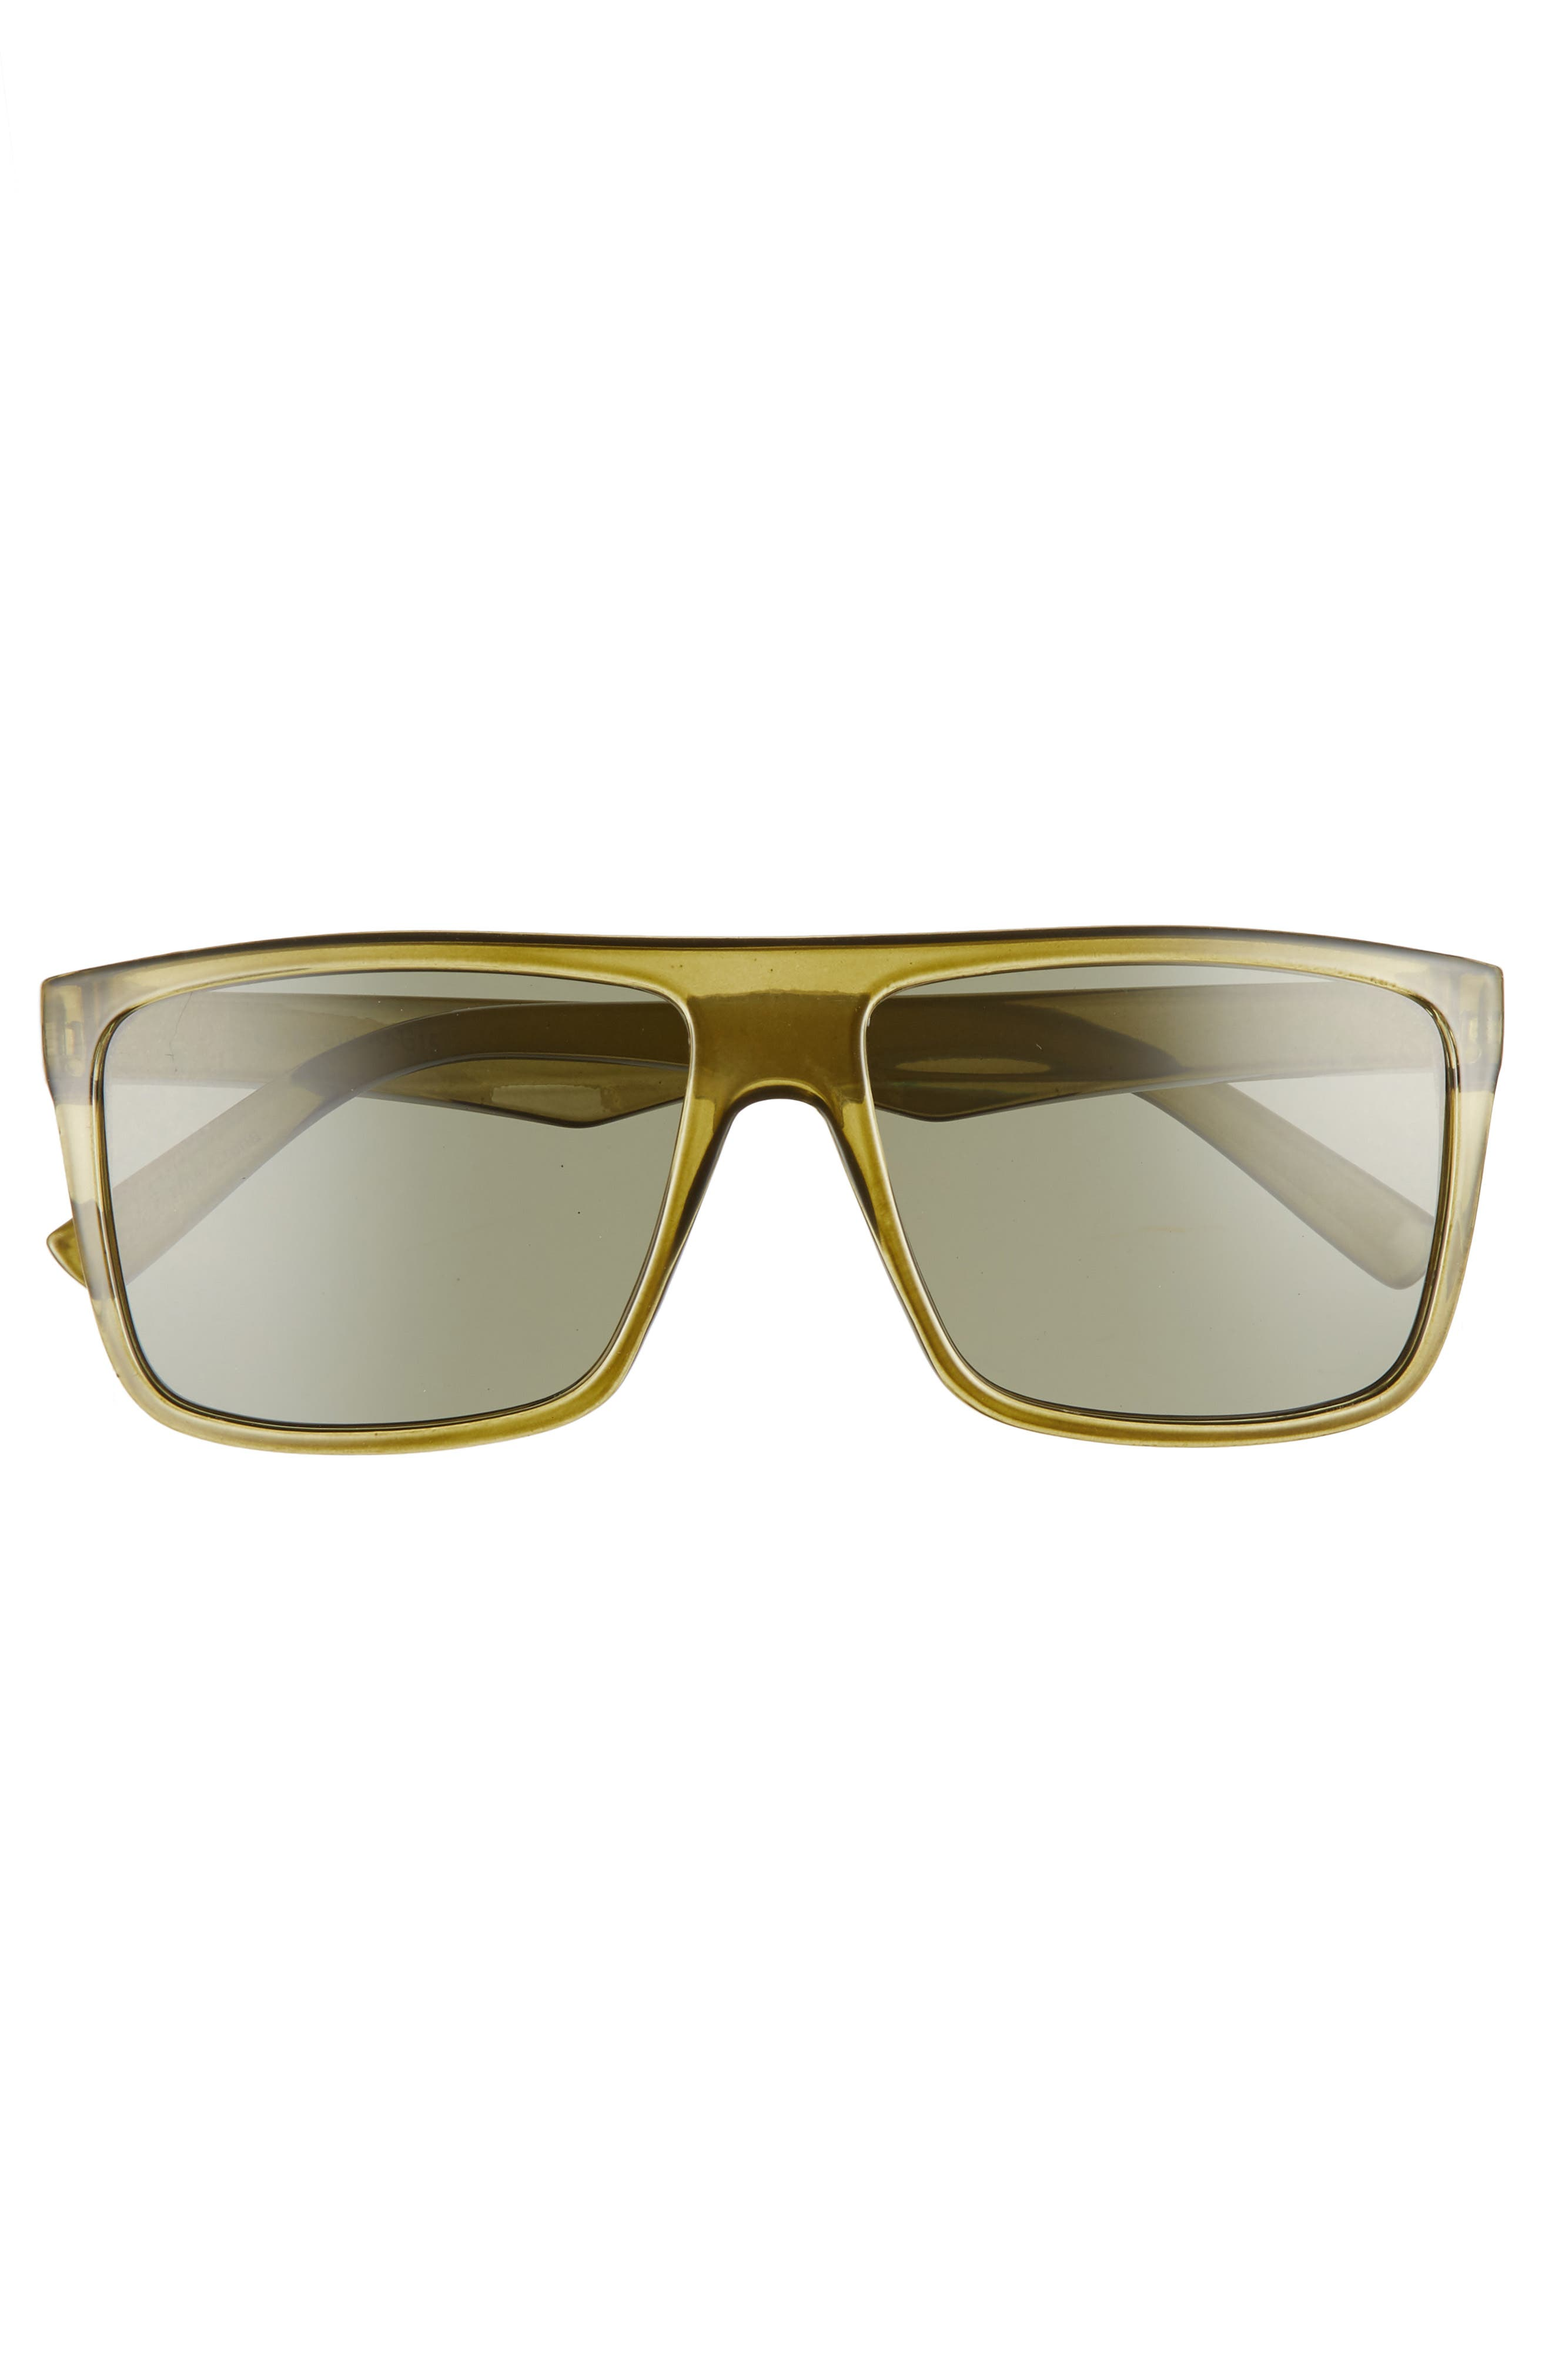 56mm Small Translucent Shield Sunglasses,                             Alternate thumbnail 3, color,                             GREEN/ BLACK